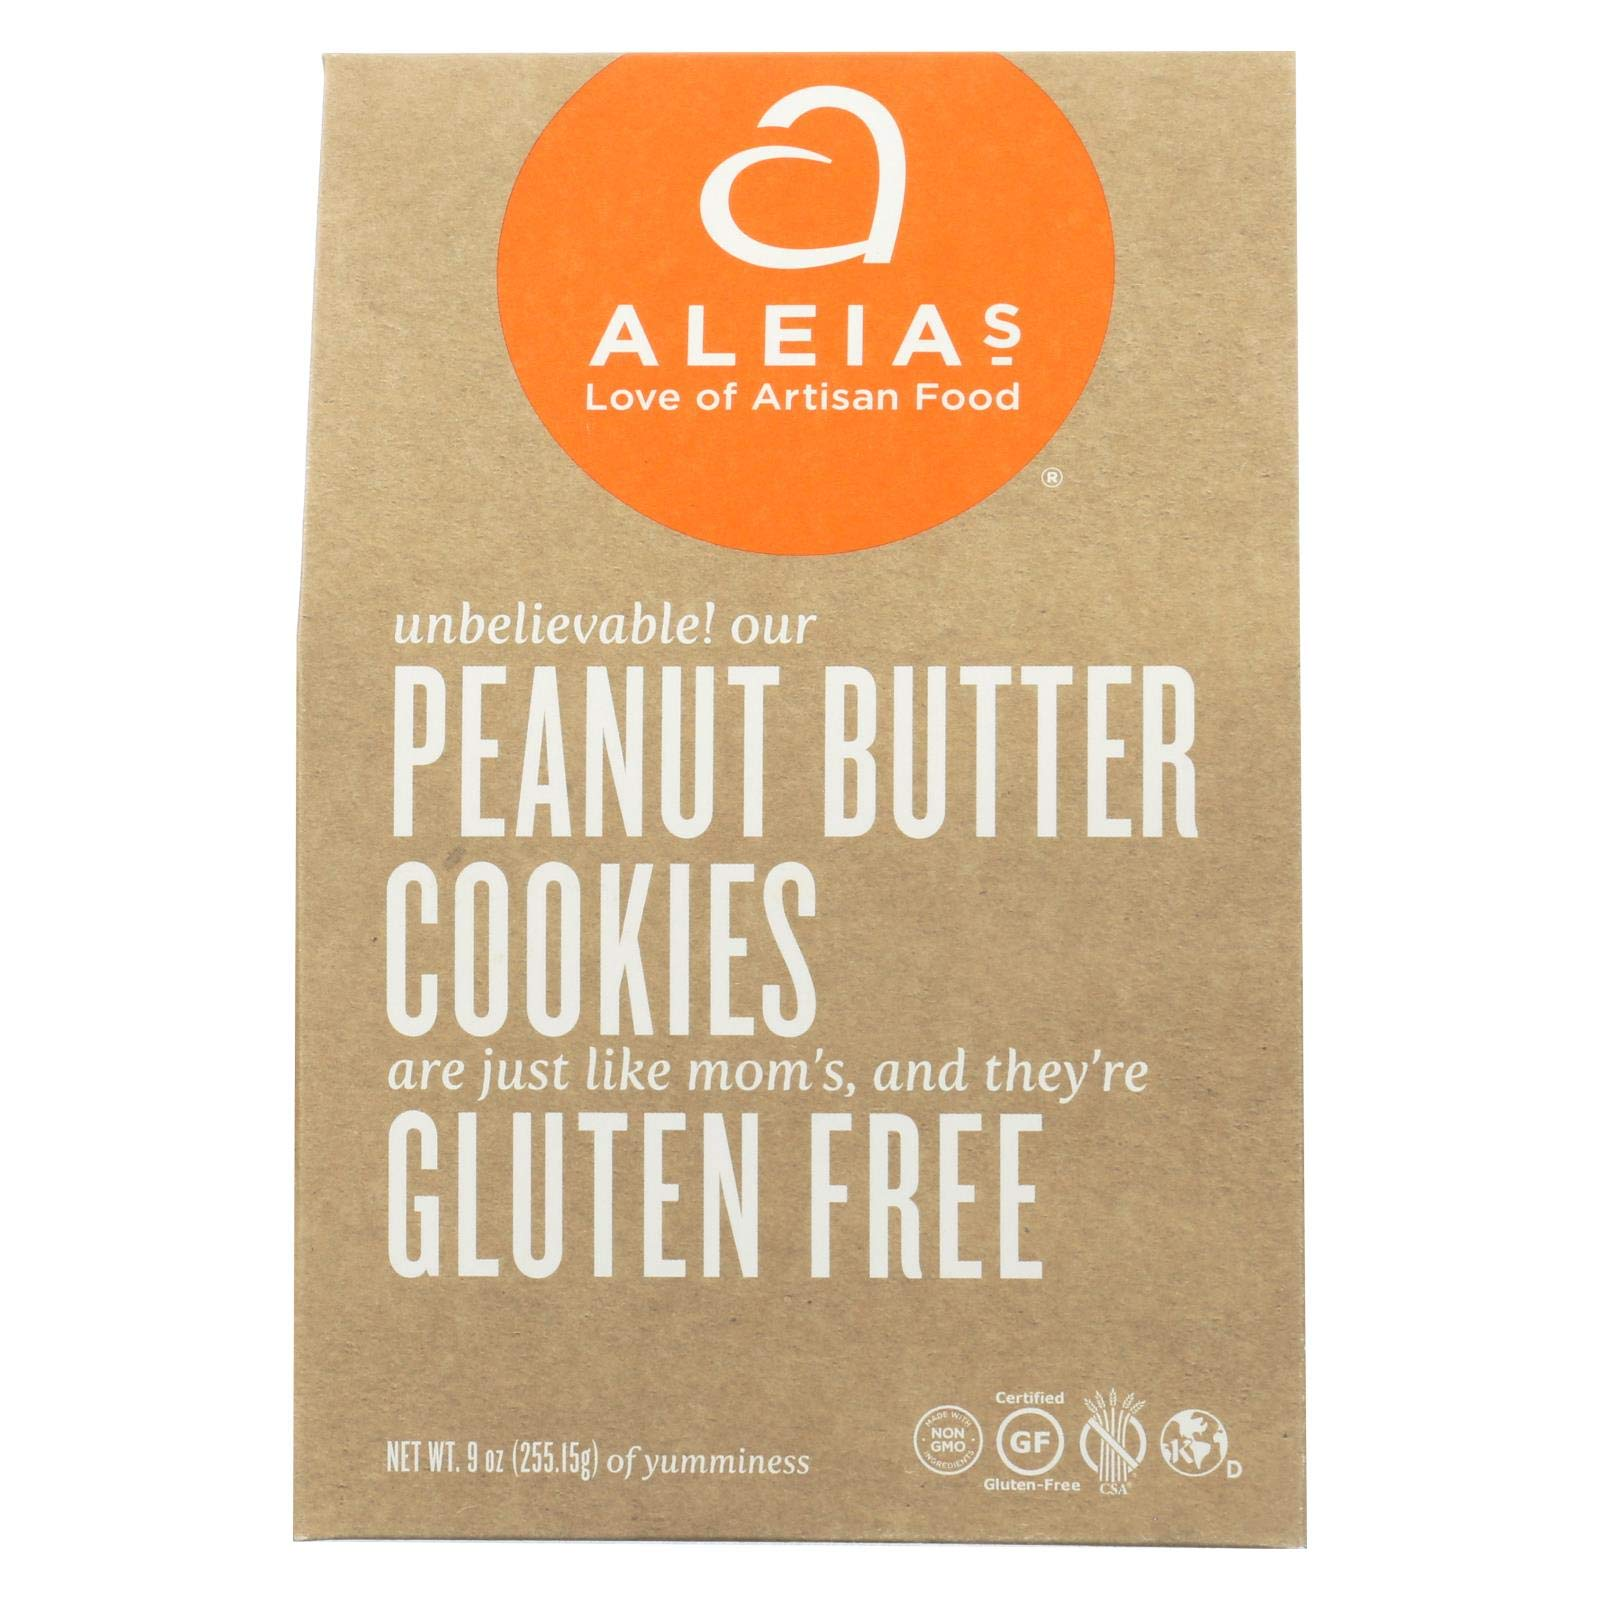 Aleias Gluten Free Peanut Butter Cookies, 9 Ounce - 6 per case. by Aleias